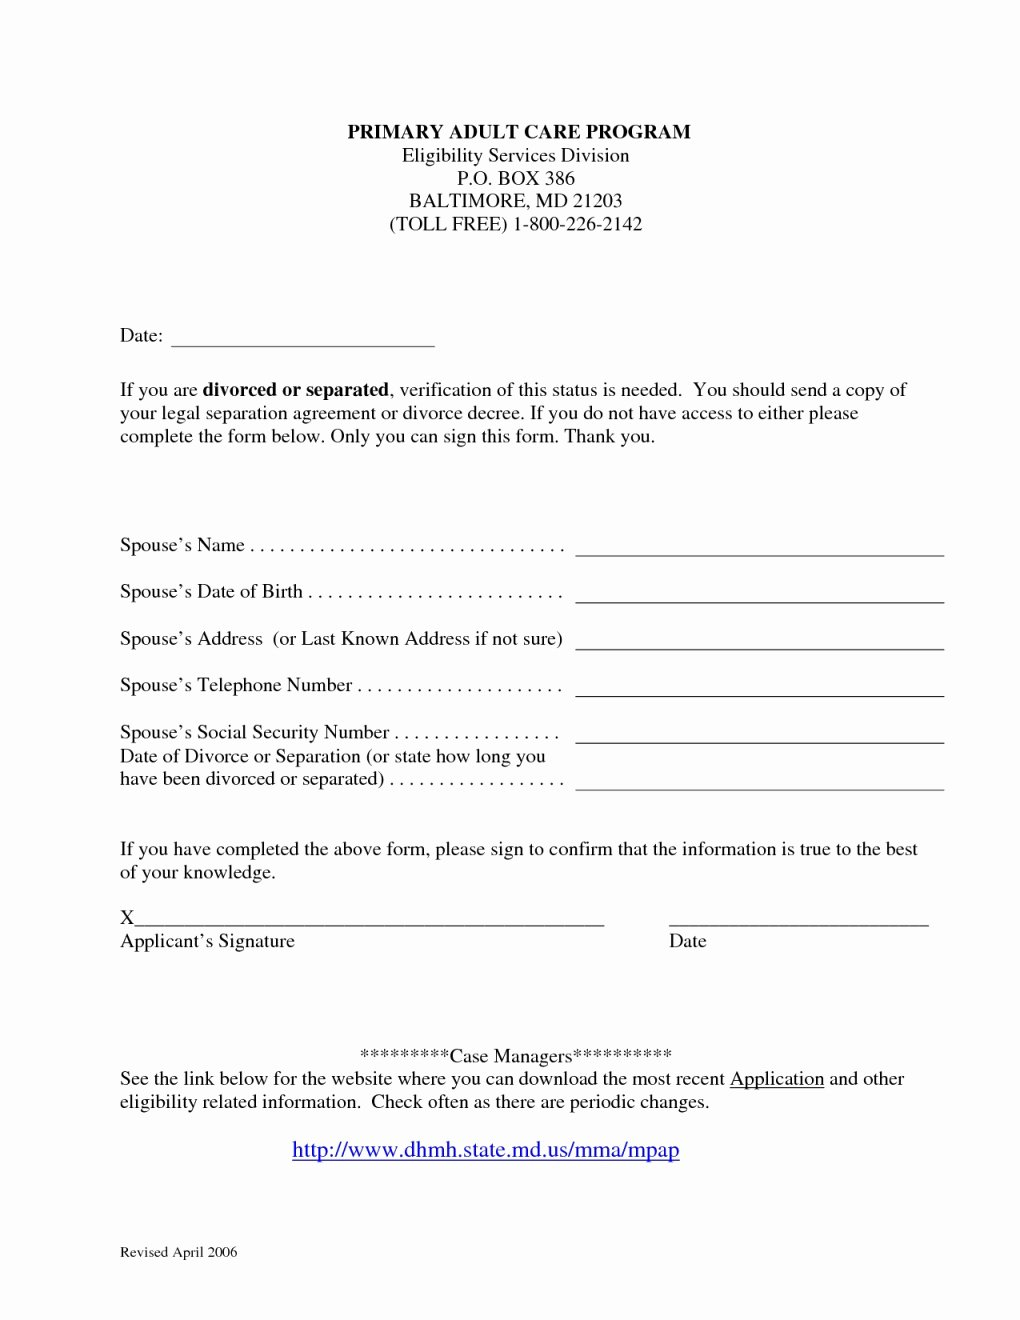 Waiver Rights form Sample